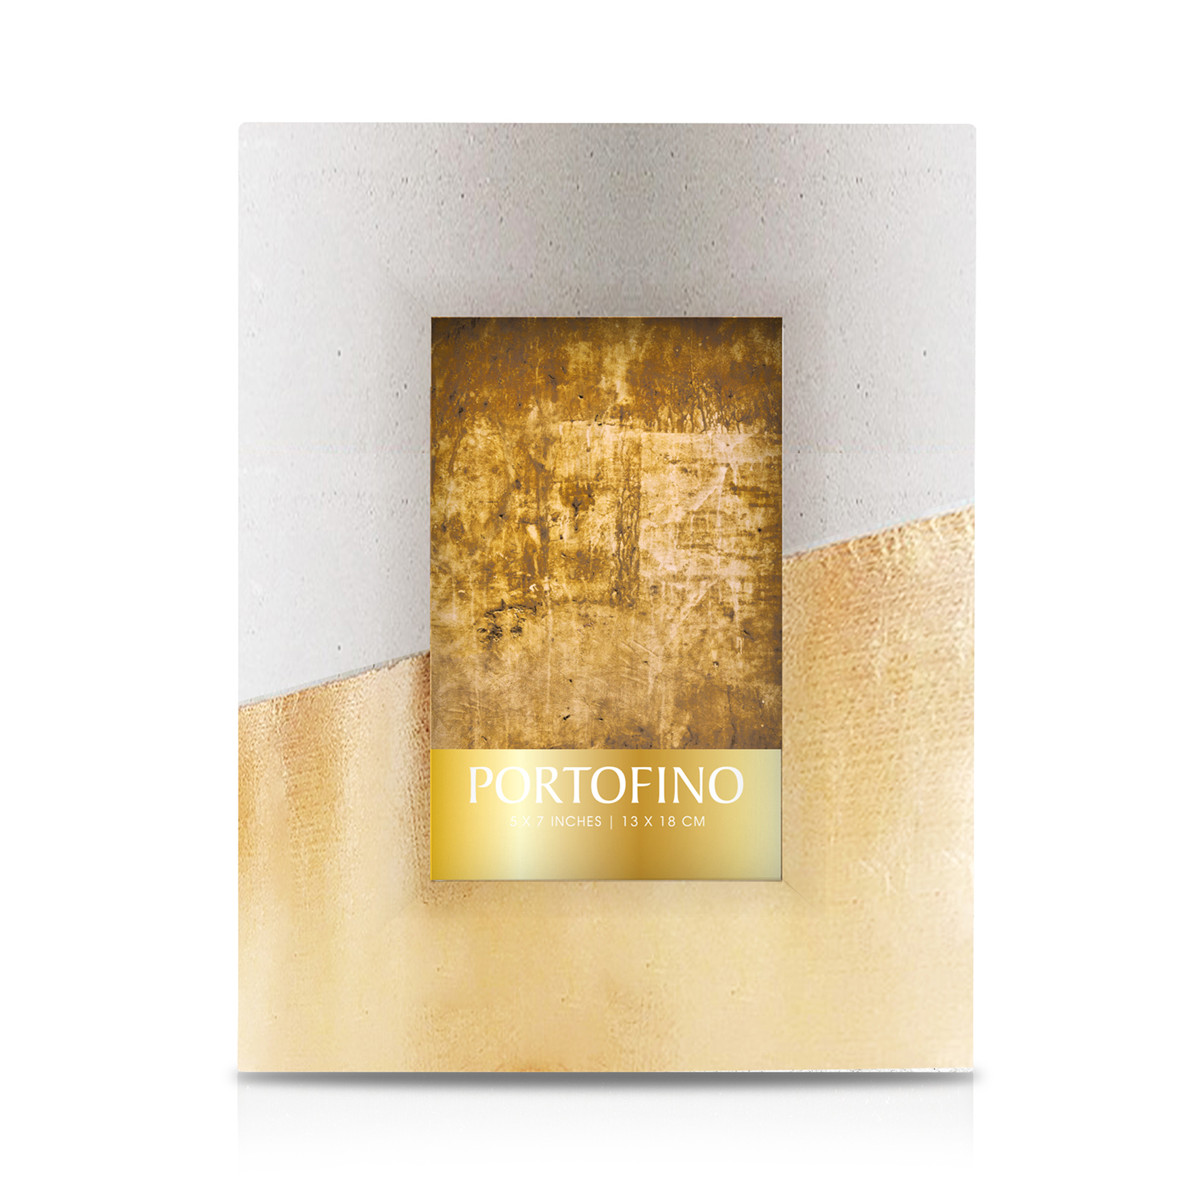 Argento SC Gold Concrete Block Picture Frame at Bloomingdale's, $28